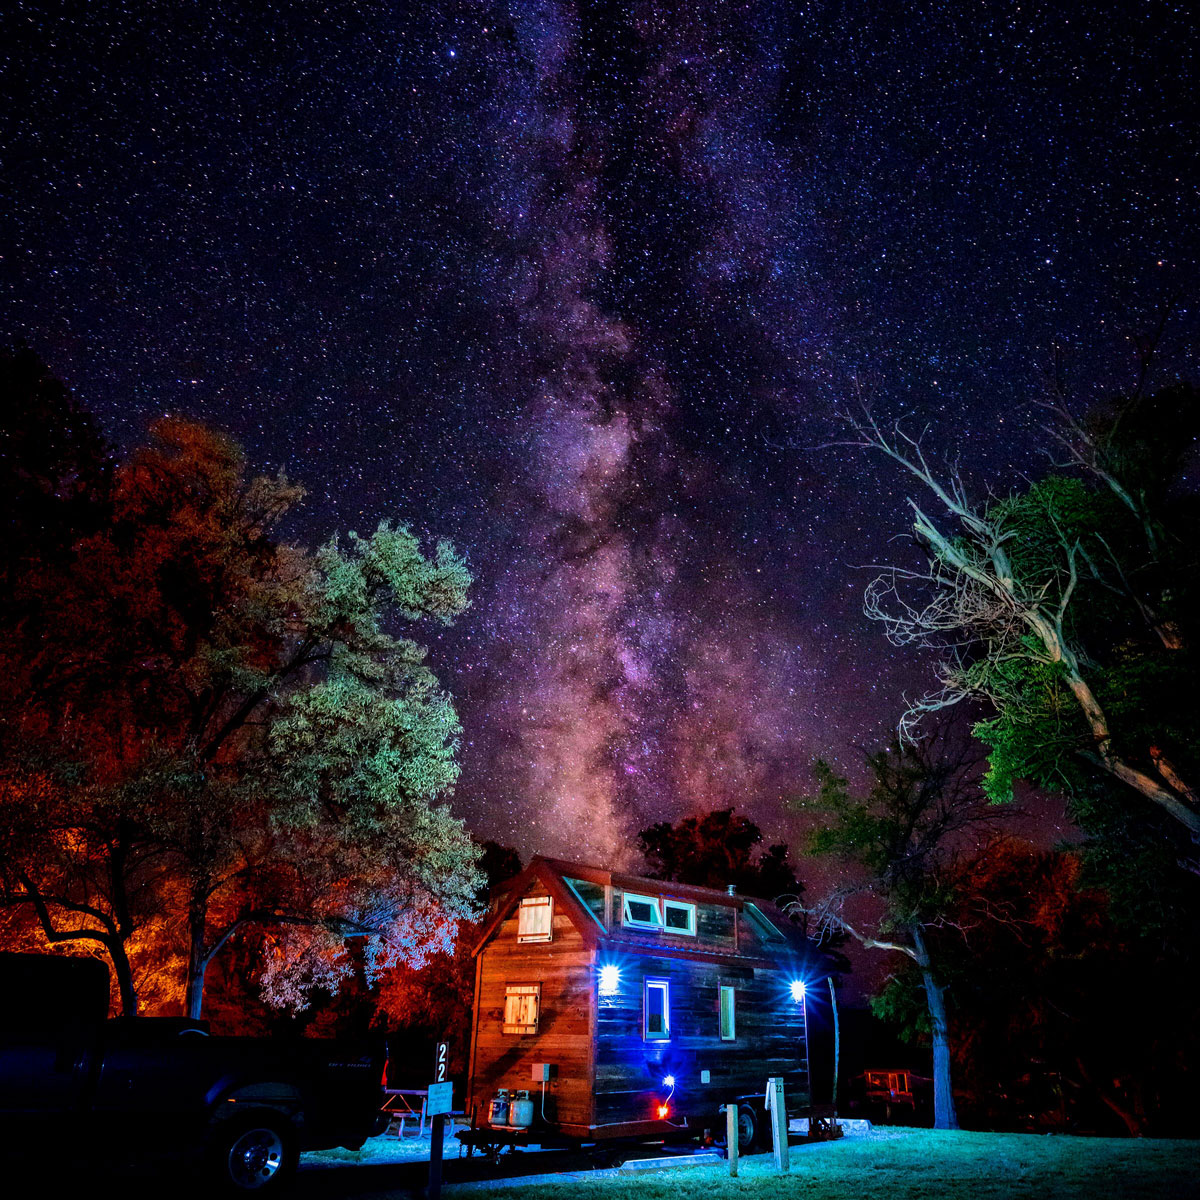 Tiny-House-Milky-Way-Stars-Craters-Of-The-Moon-01